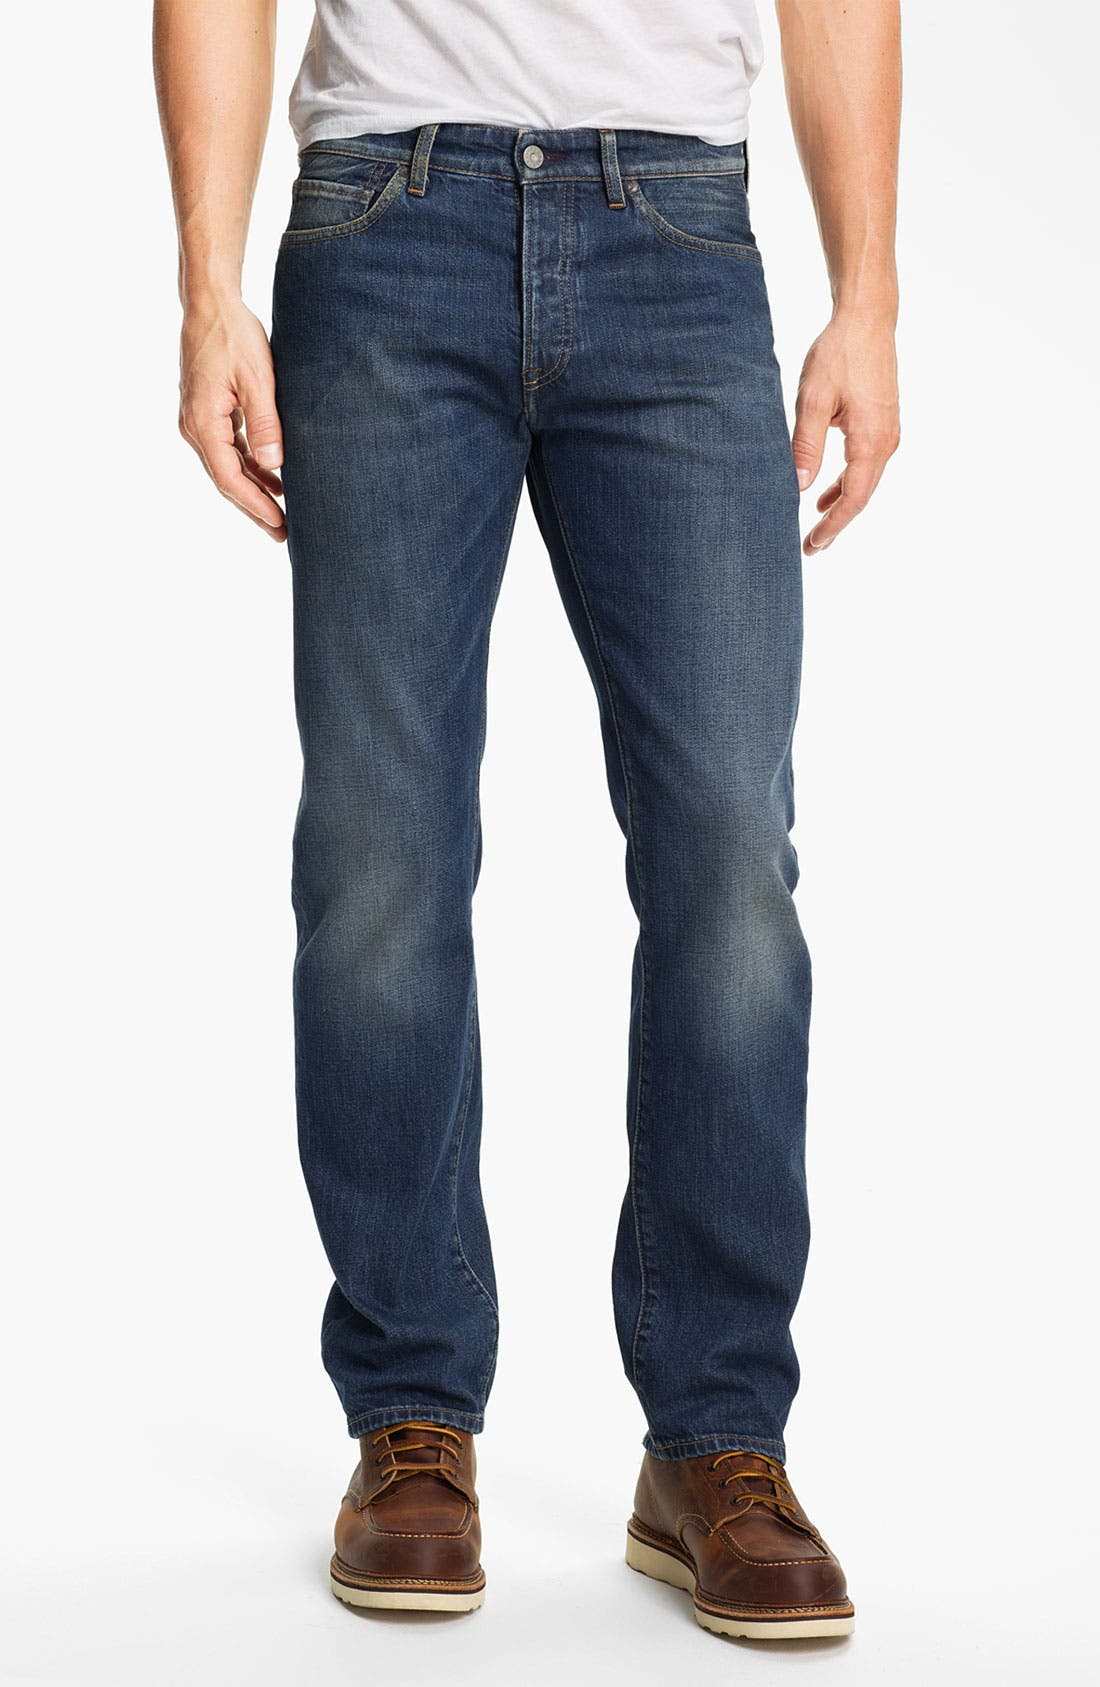 Alternate Image 1 Selected - Levi's® Made & Crafted™ 'Ruler' Straight Leg Jeans (Wave)